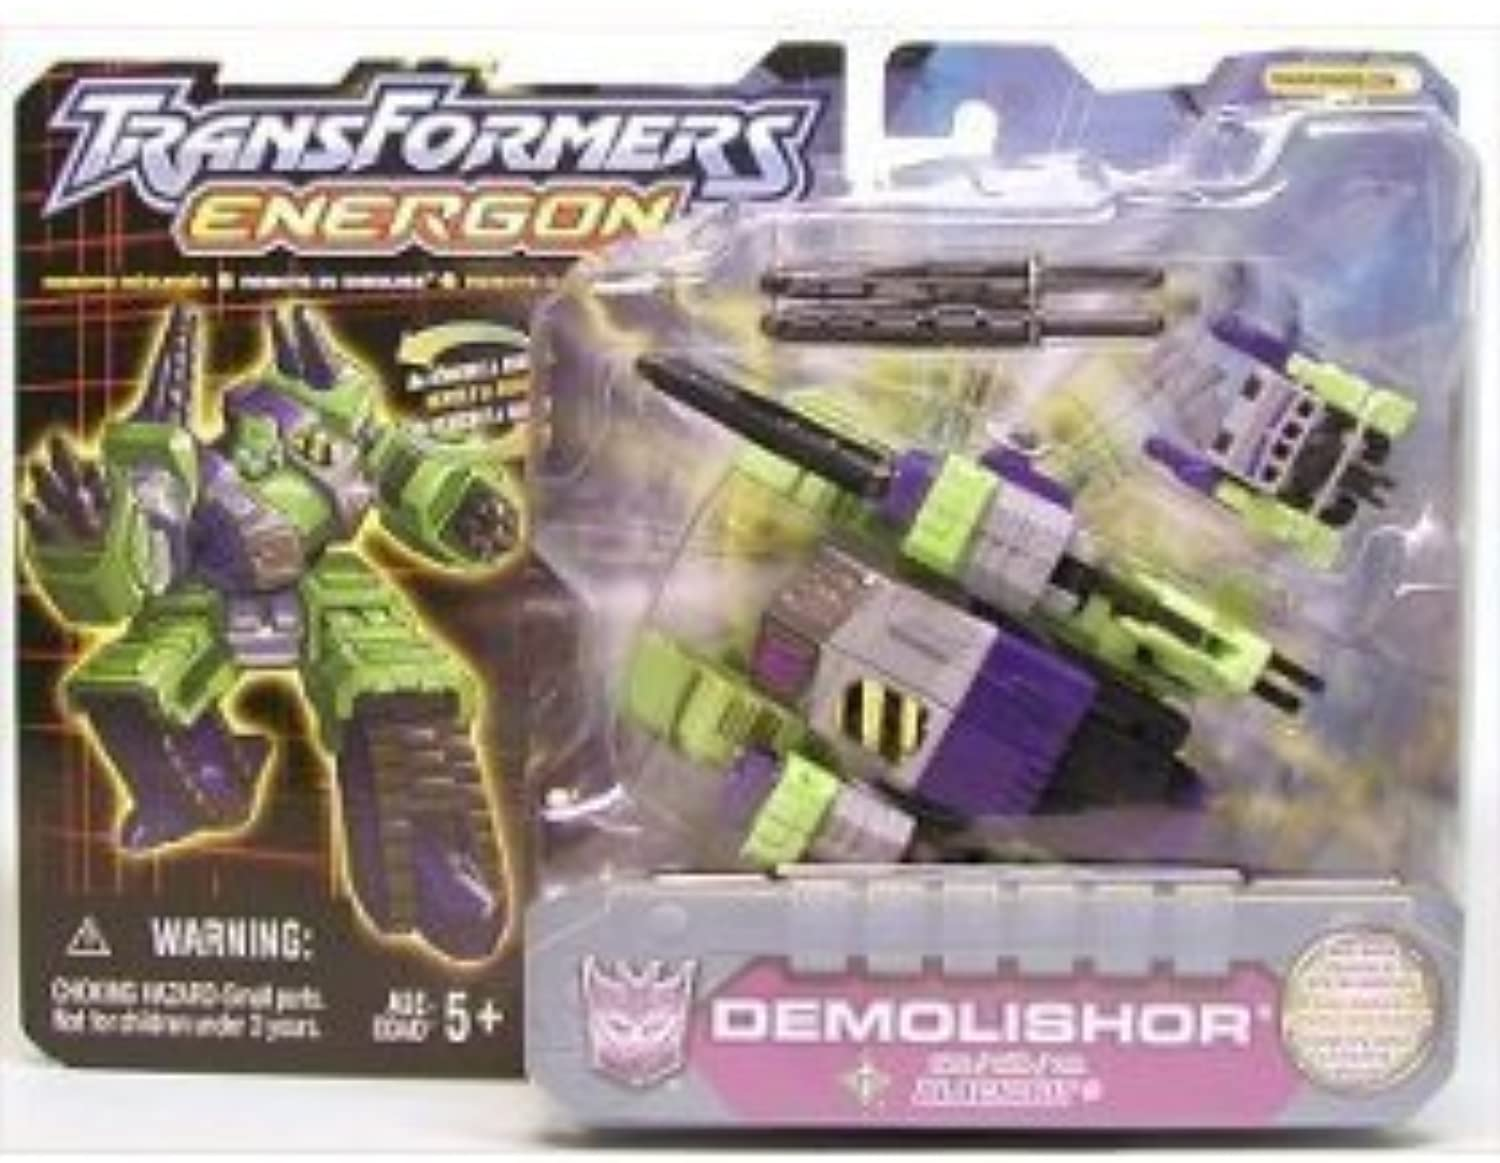 Transformers Energon DEMOLISHOR Helicopter w schwarzOUT Tank  K-B TOYS Exclusive VARIANT